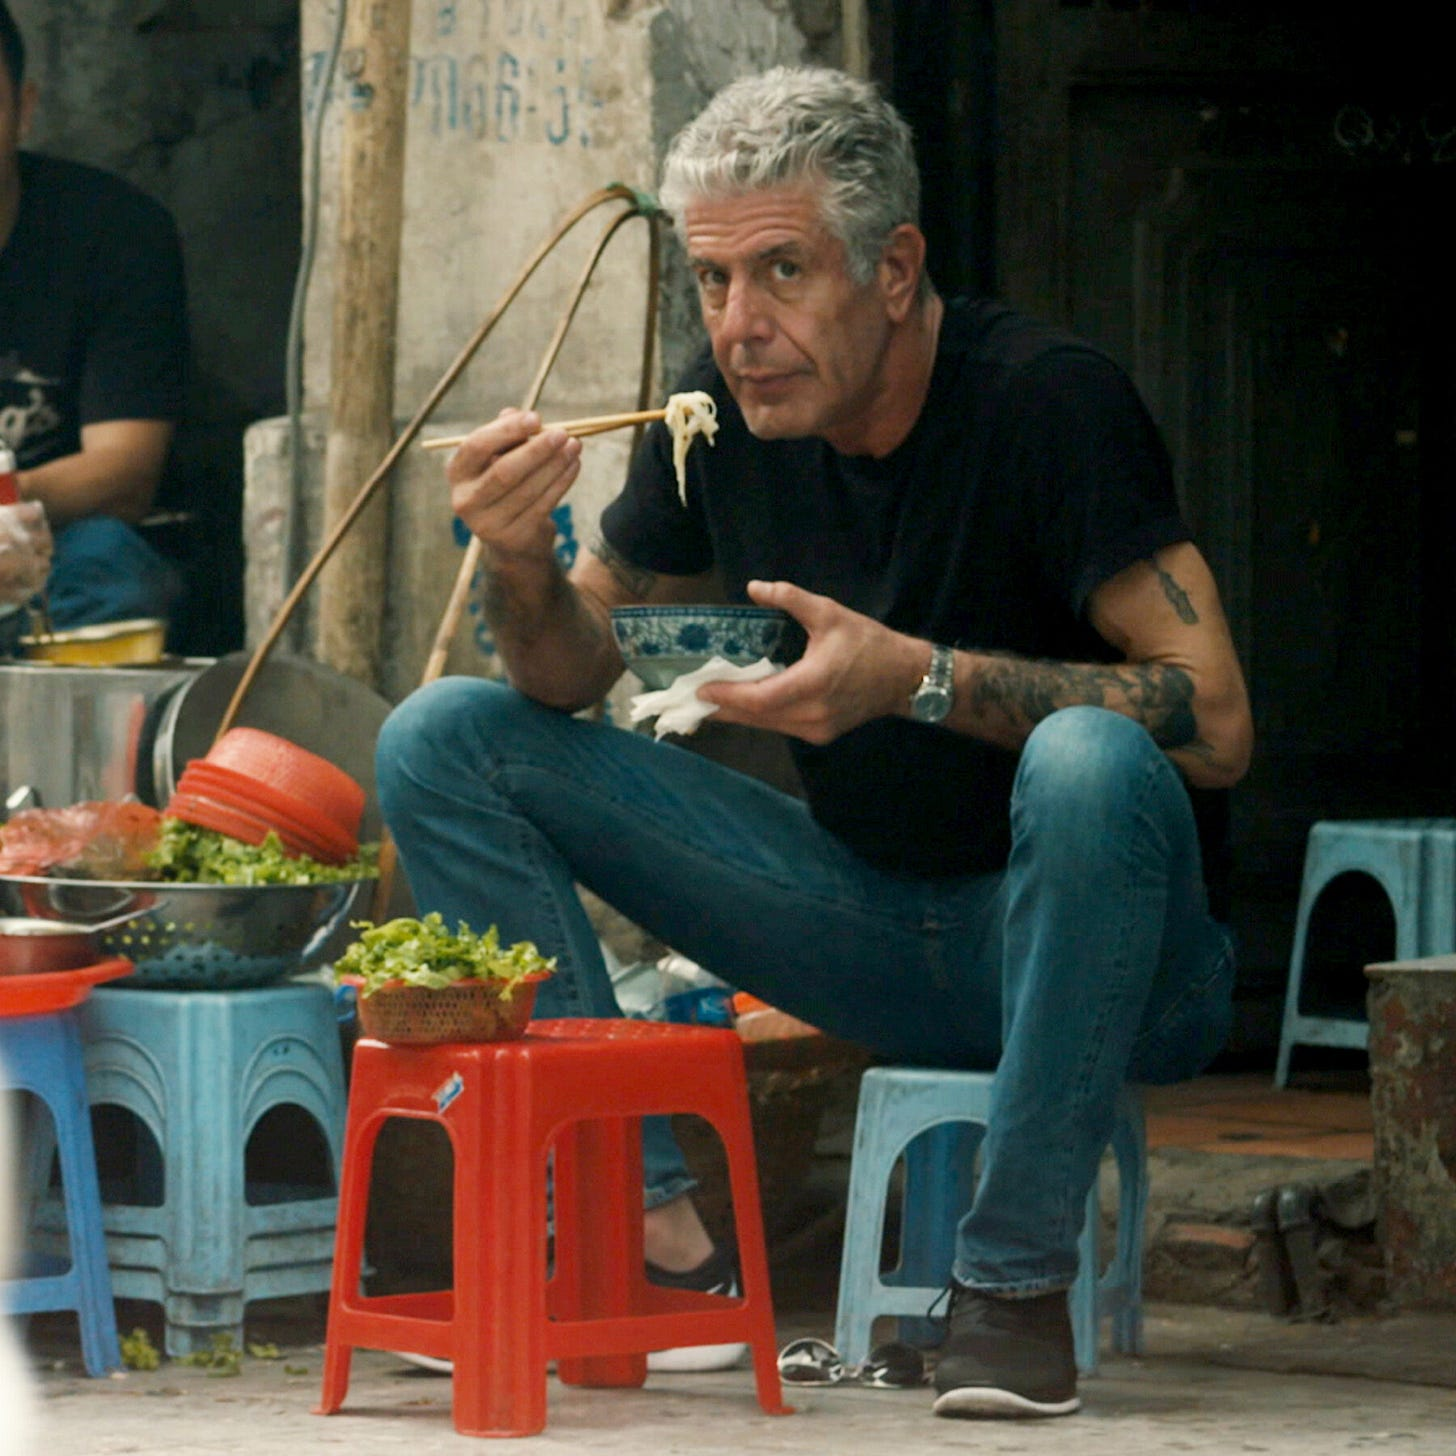 Anthony Bourdain 'Roadrunner' Documentary Seeks to Understand His Death,  Career and Struggles - The New York Times